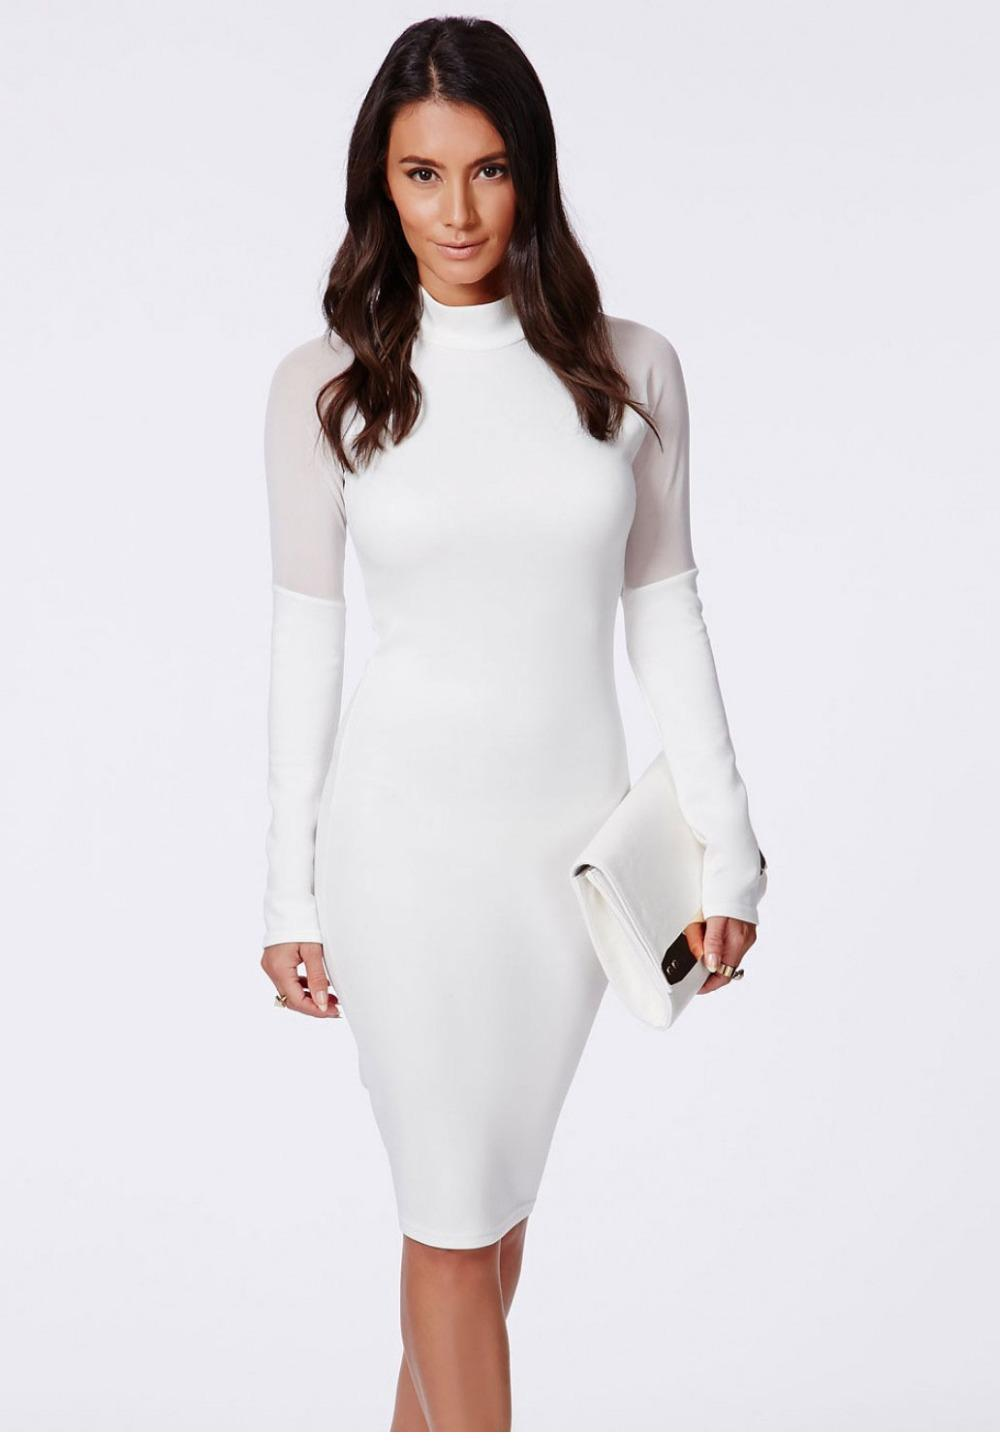 Winter White Long Sleeve Dress